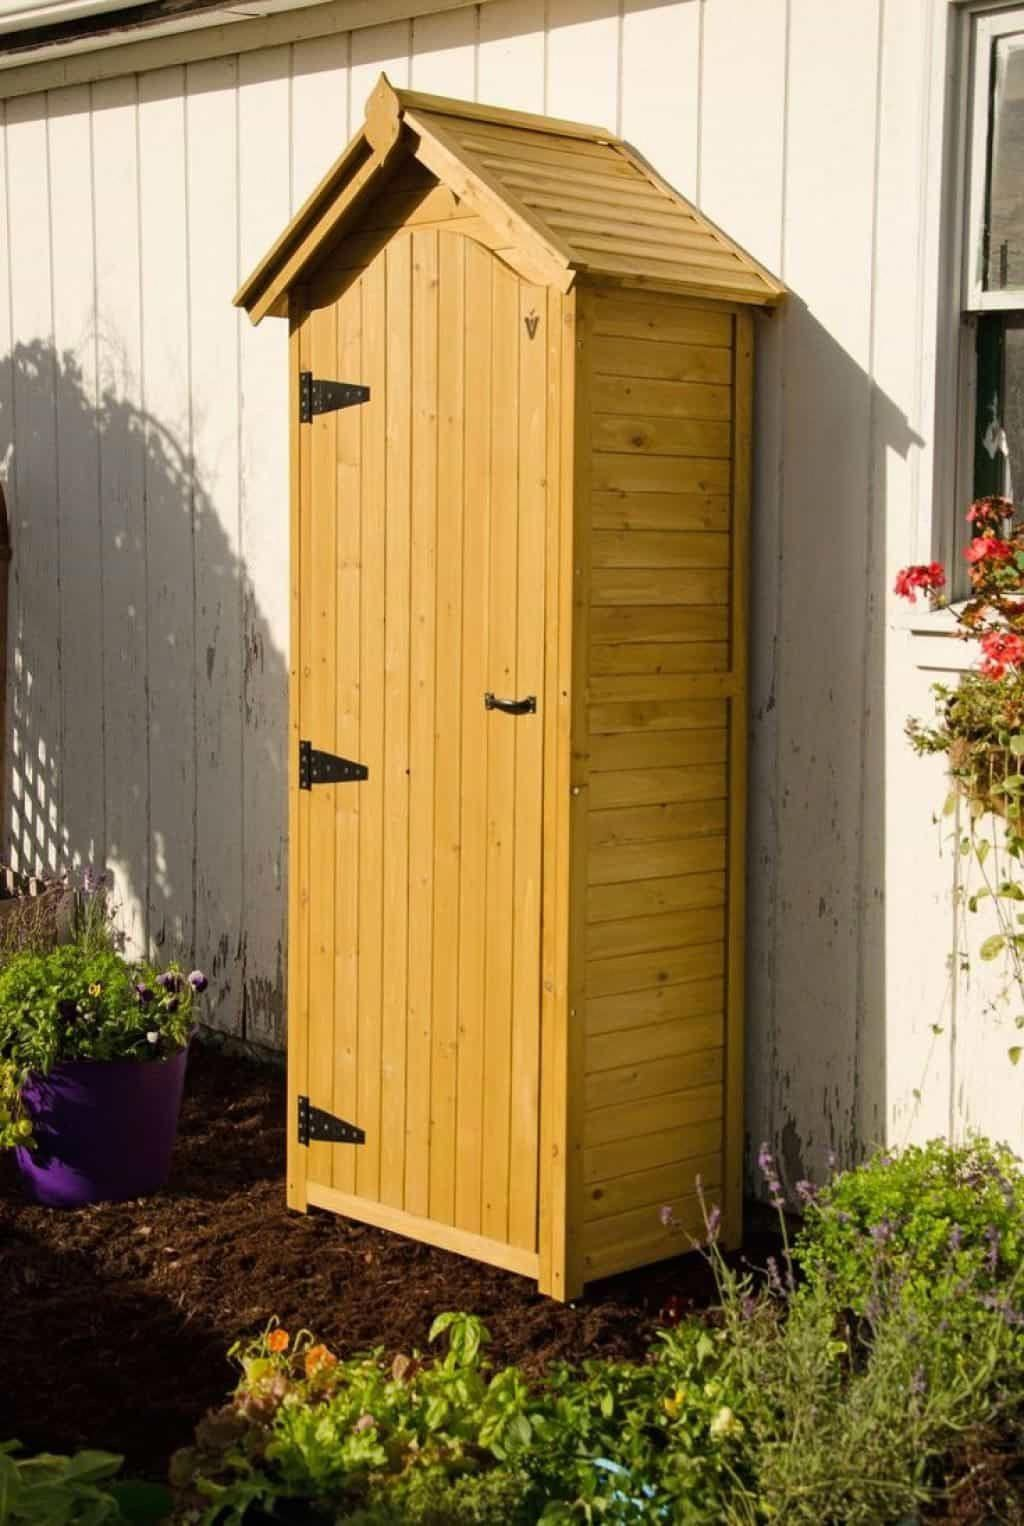 Pent Roofed Tall Garden Stores These Sheds Are Perfect For The Storage Of Spades Forks Brooms An Small Garden Tools Small Garden Storage Garden Tool Storage